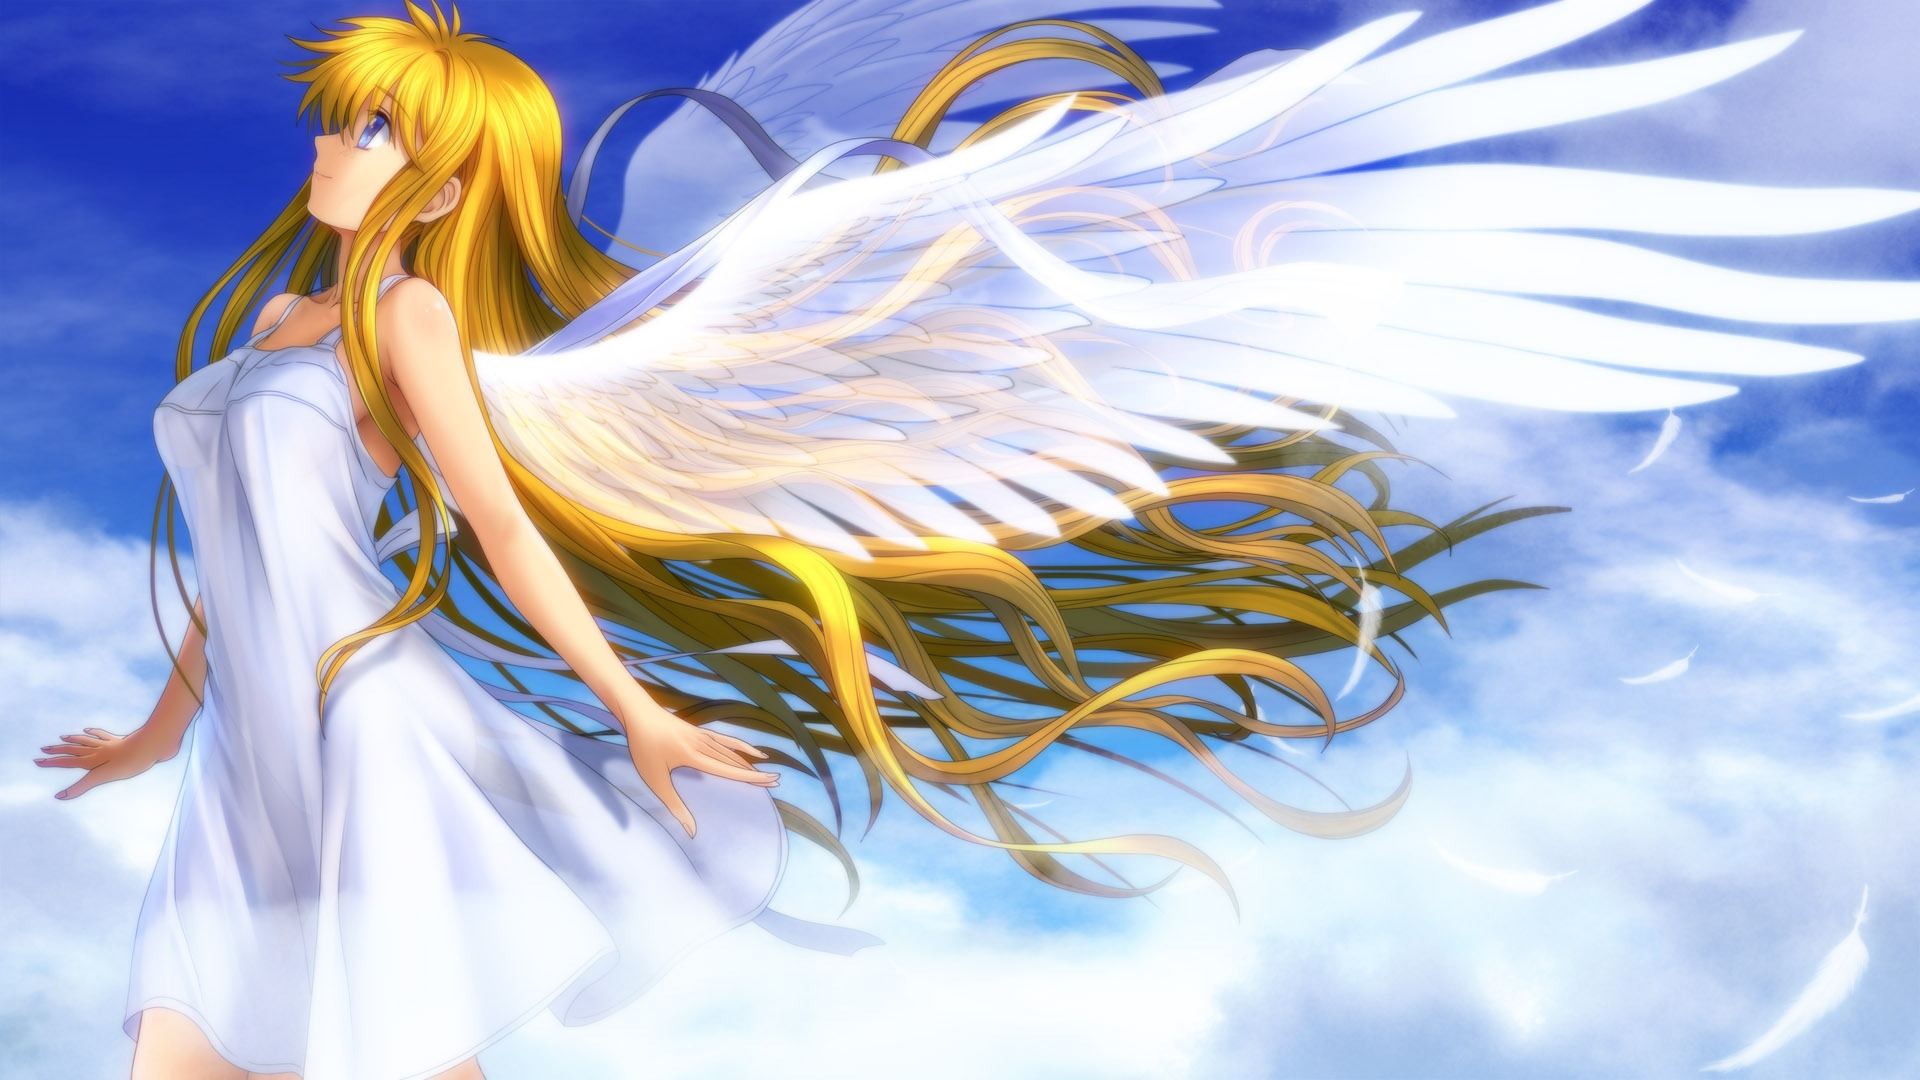 Chica Con Alas De Angel Full Hd En Fondos 1080: Fondos De Pantalla Hermosas Alas De Anime Angel Girl